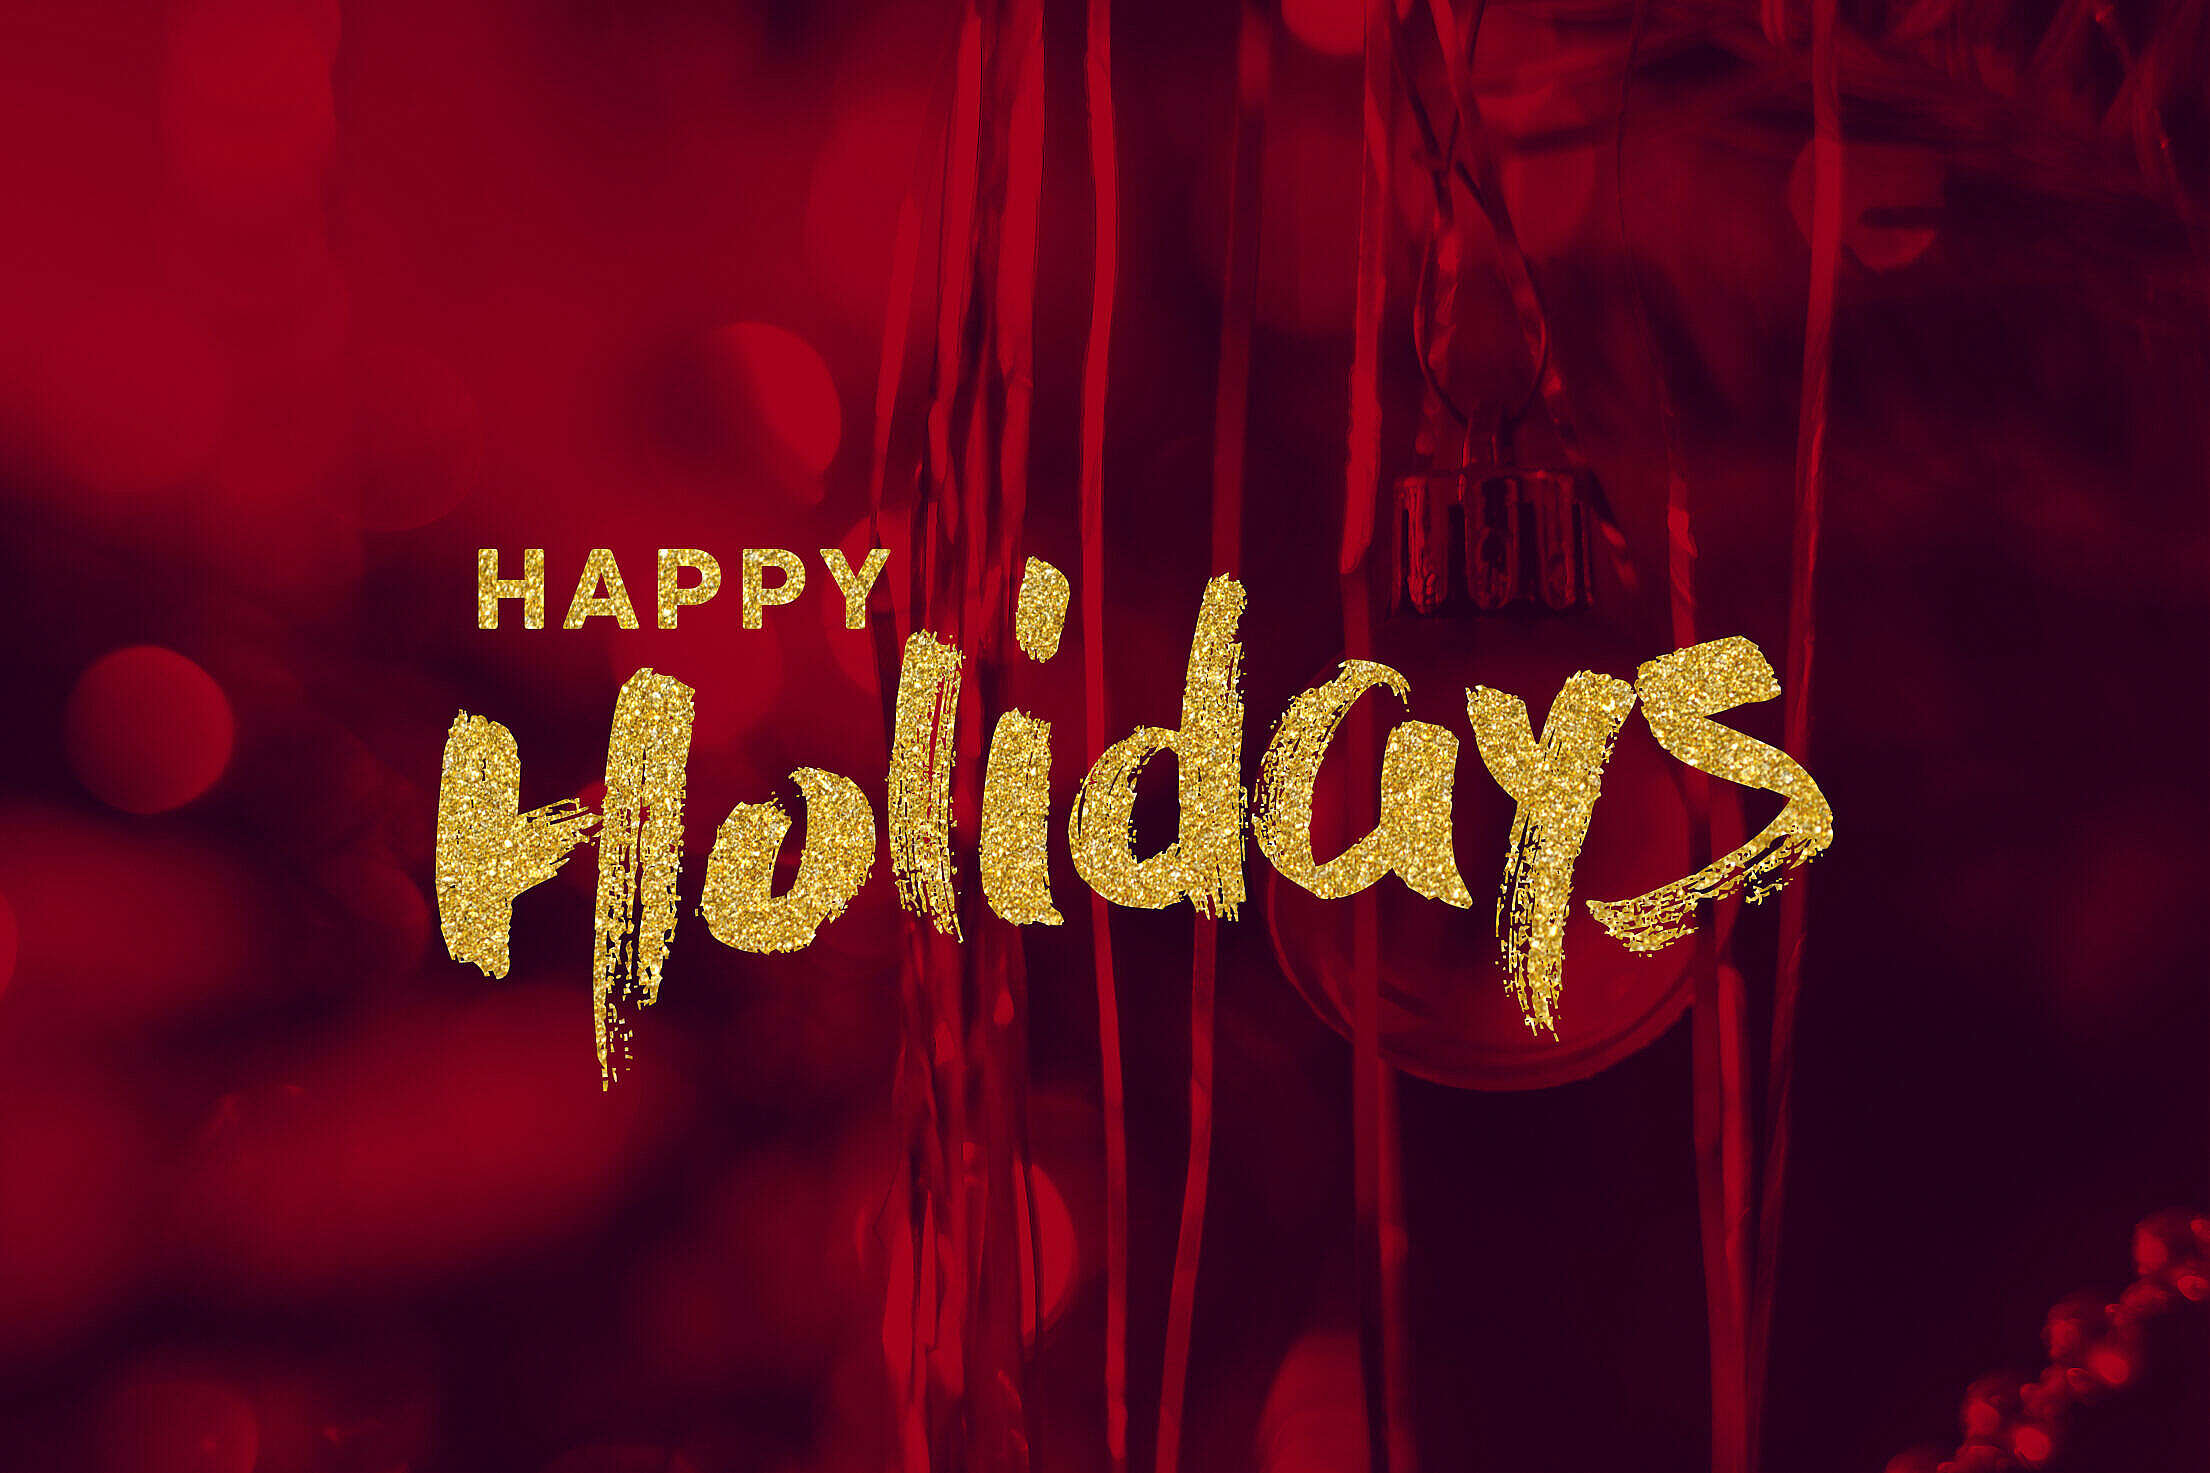 Happy Holidays Lettering Free Stock Photo